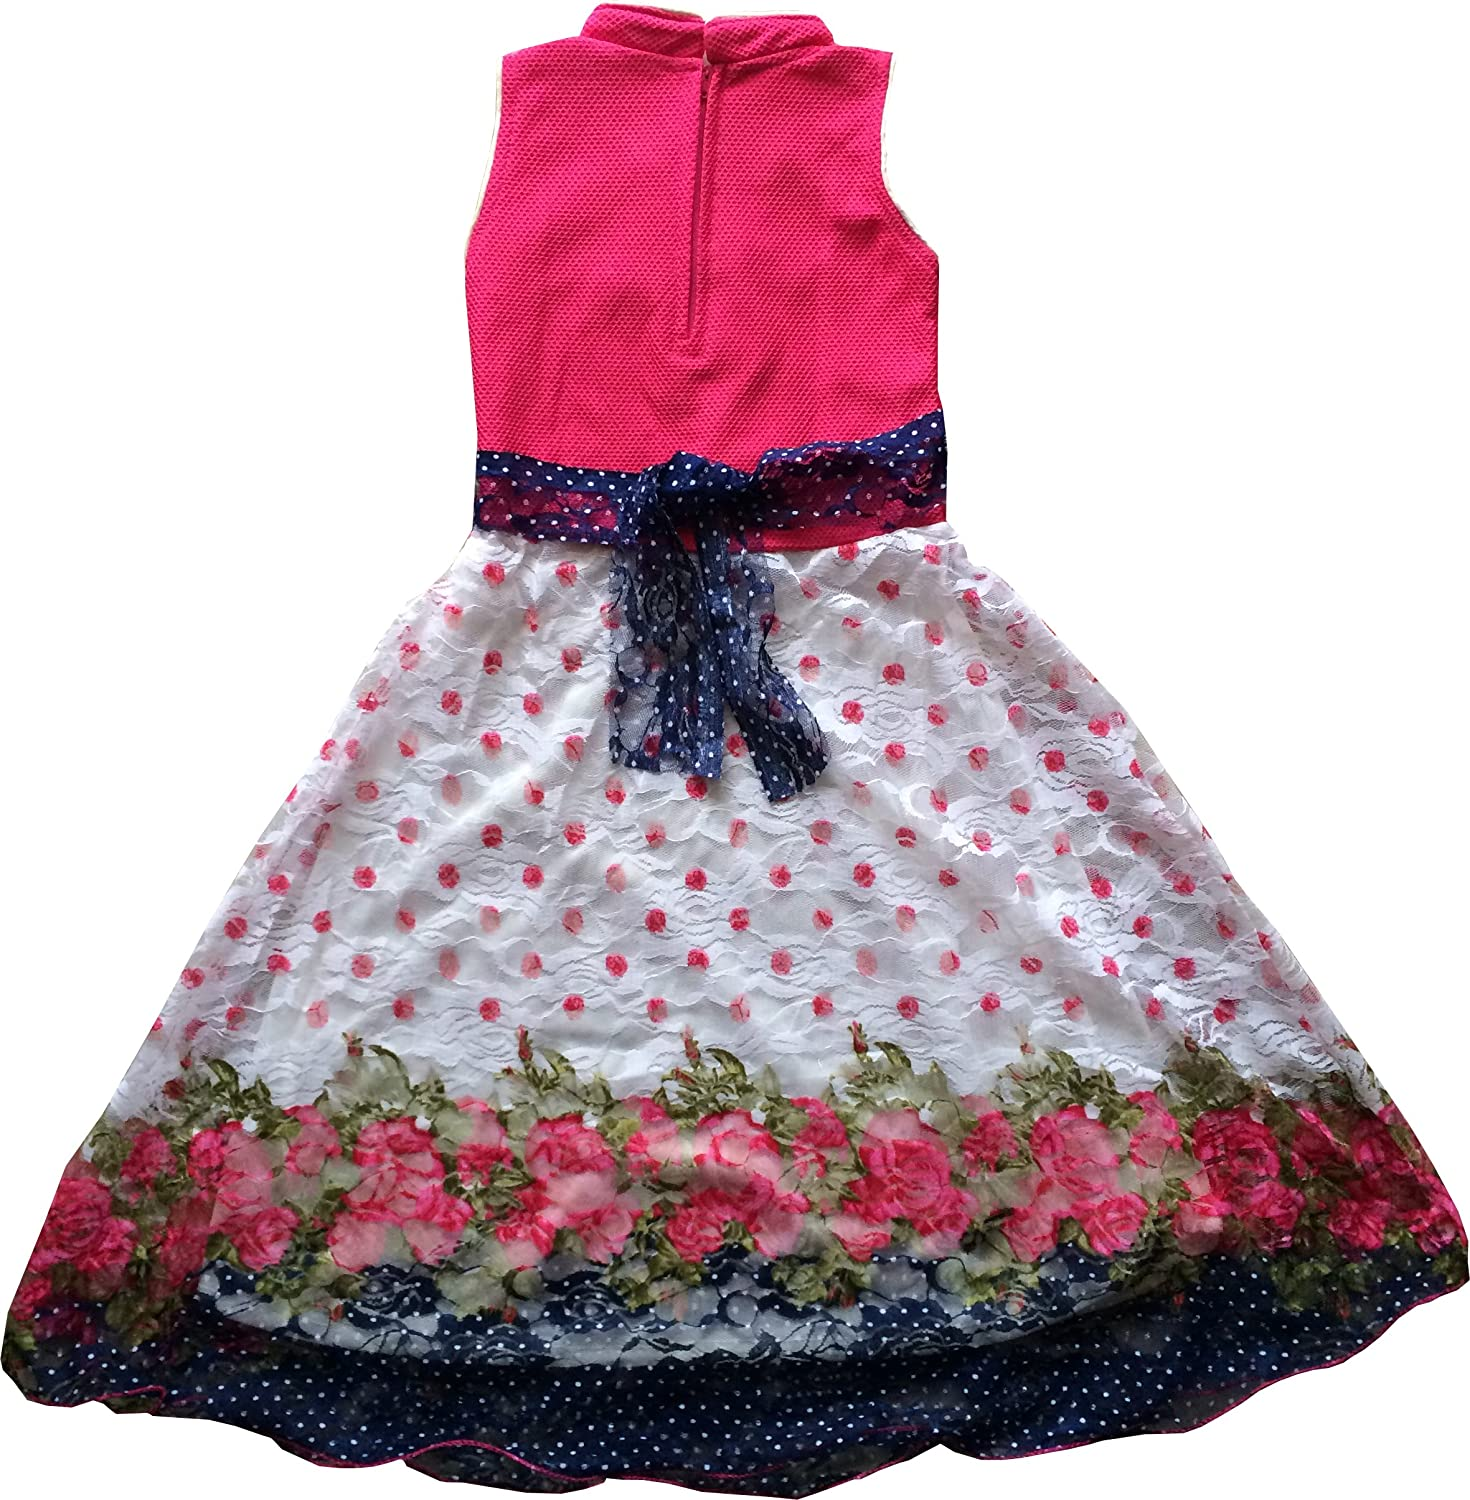 Mpc Cute Fashion Baby Girl s Popcorn Net Dresses for 18 24 Months